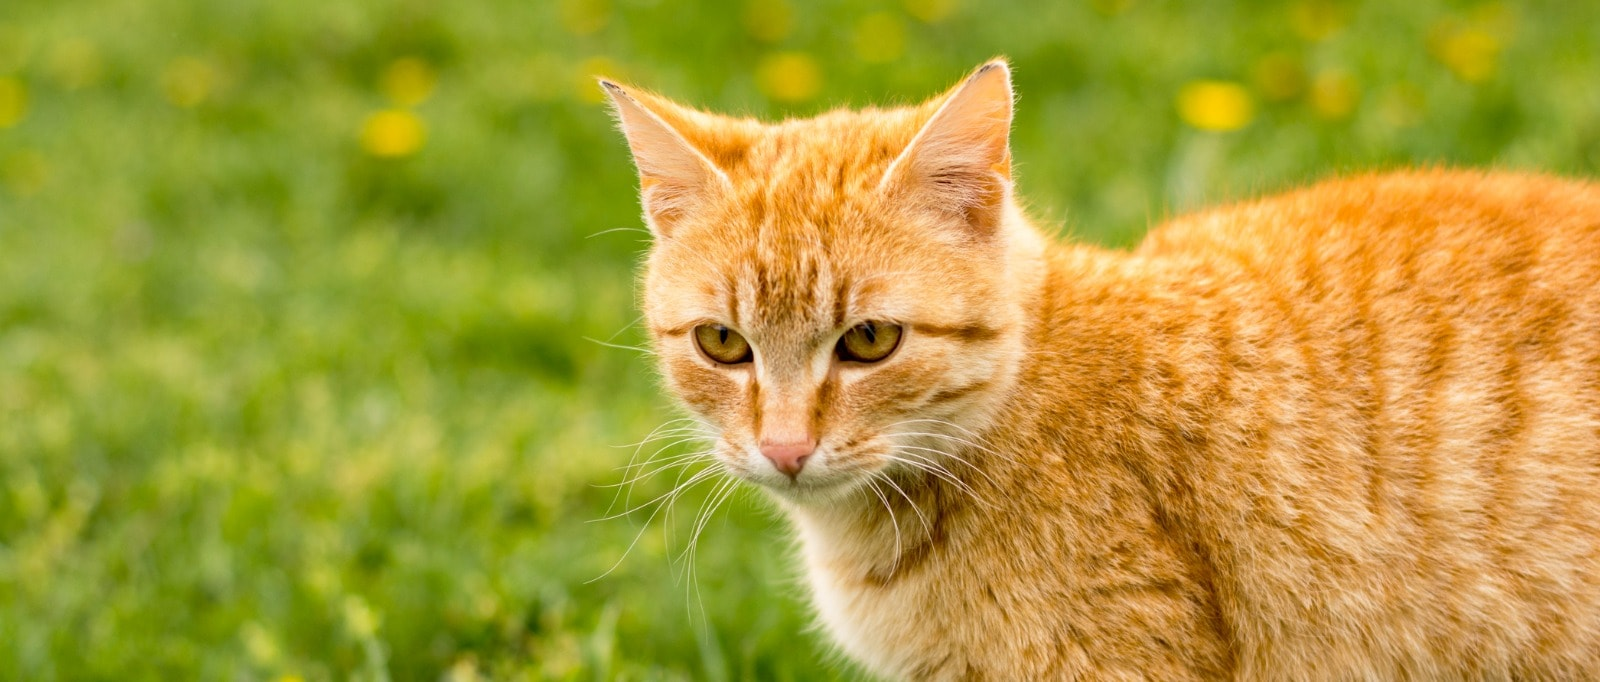 Urinary Struvite for Cats